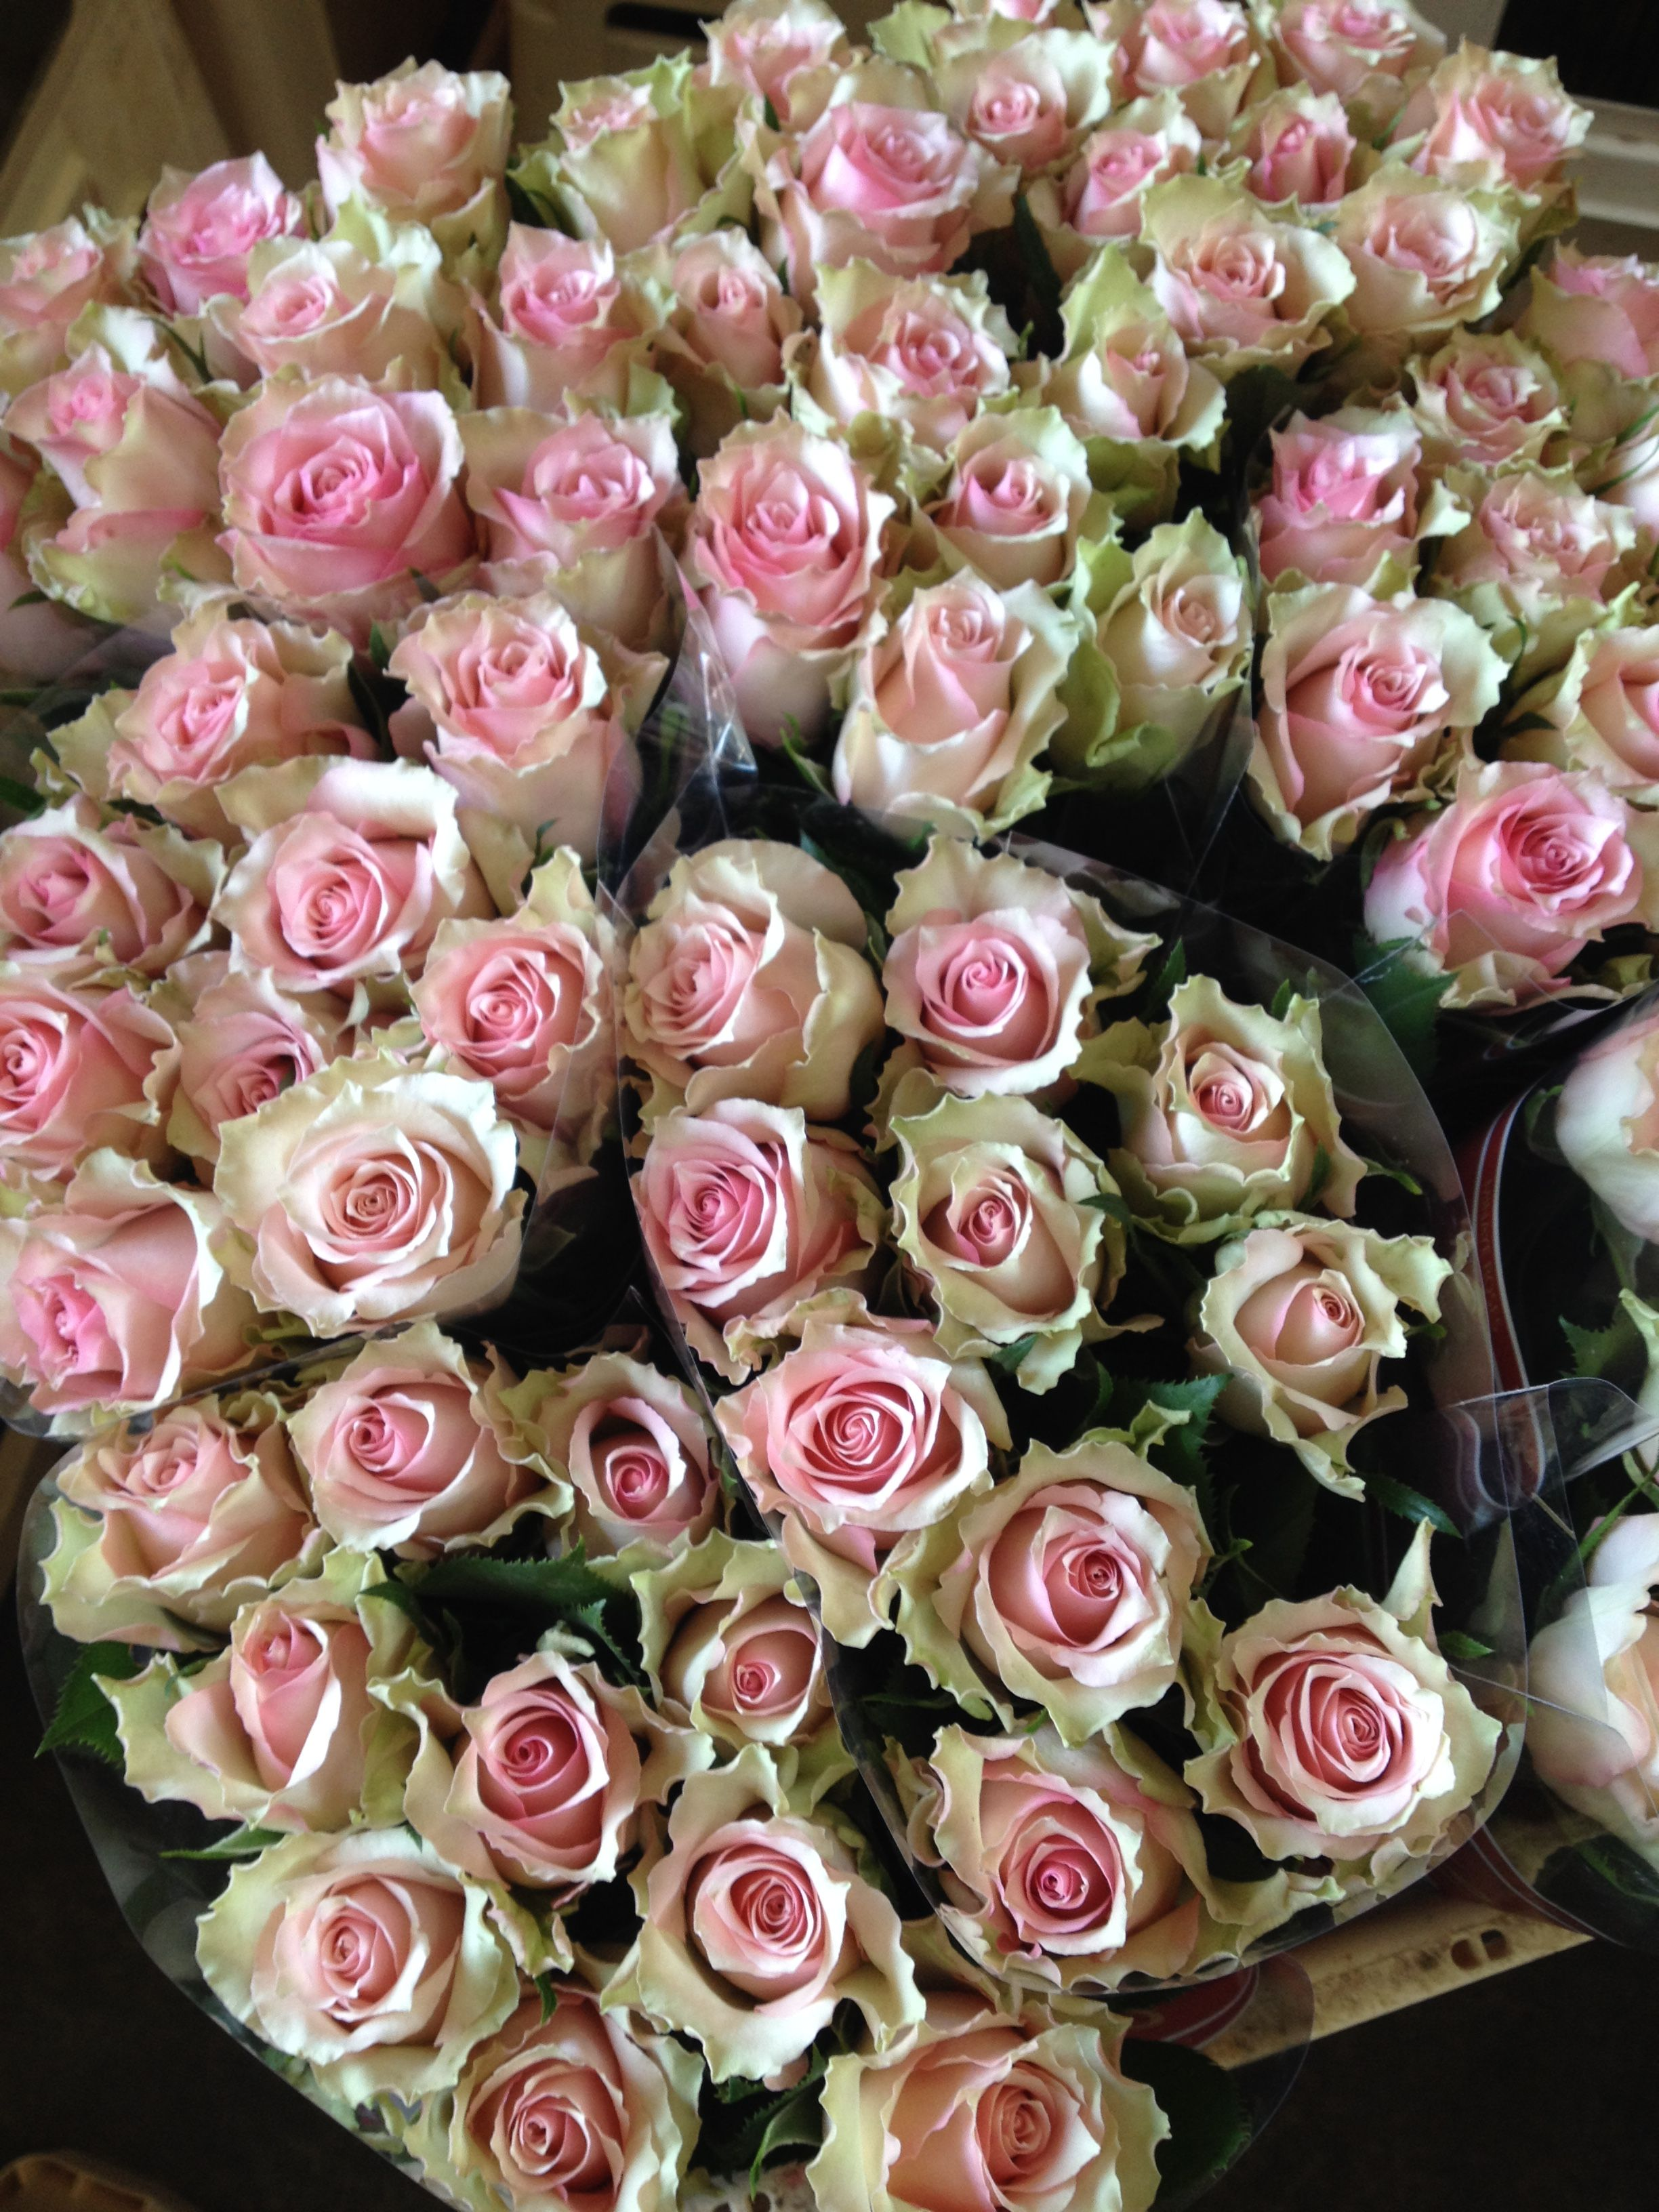 Home bulk roses peach roses - Bucket Full Of Vintage Pink Roses Called Dreamland Sold In Bunches Of 20 Stems From The Flowermonger The Wholesale Floral Home Delivery Service